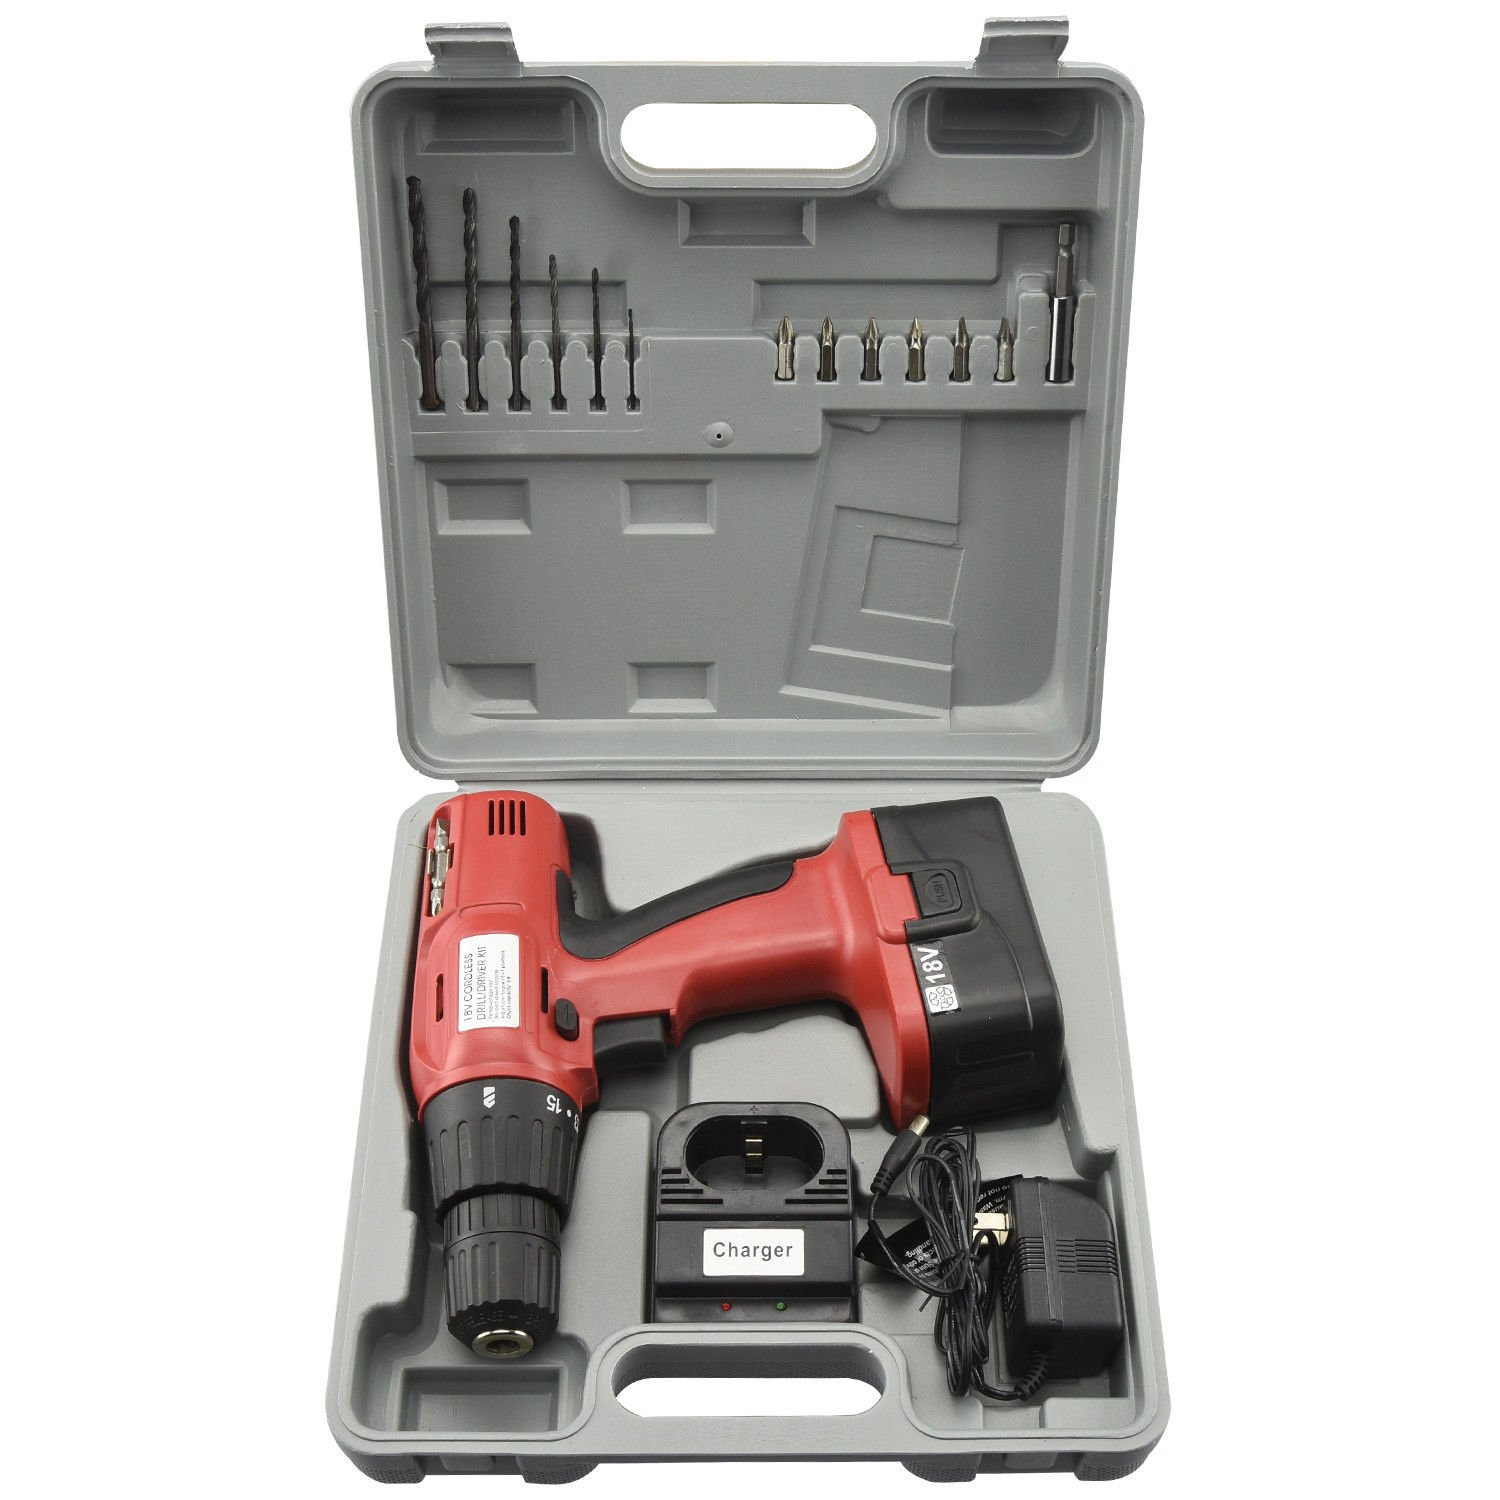 ESKALEX 18V Cordless Drill | Keyless Chuck Automotive Woodworking Bench Power Tool Case And 18V Cordless Drill Reversible: 600 RPM 16 Torque Clutch 3/8'' Keyless Chuck Includes an 18 Volt Battery